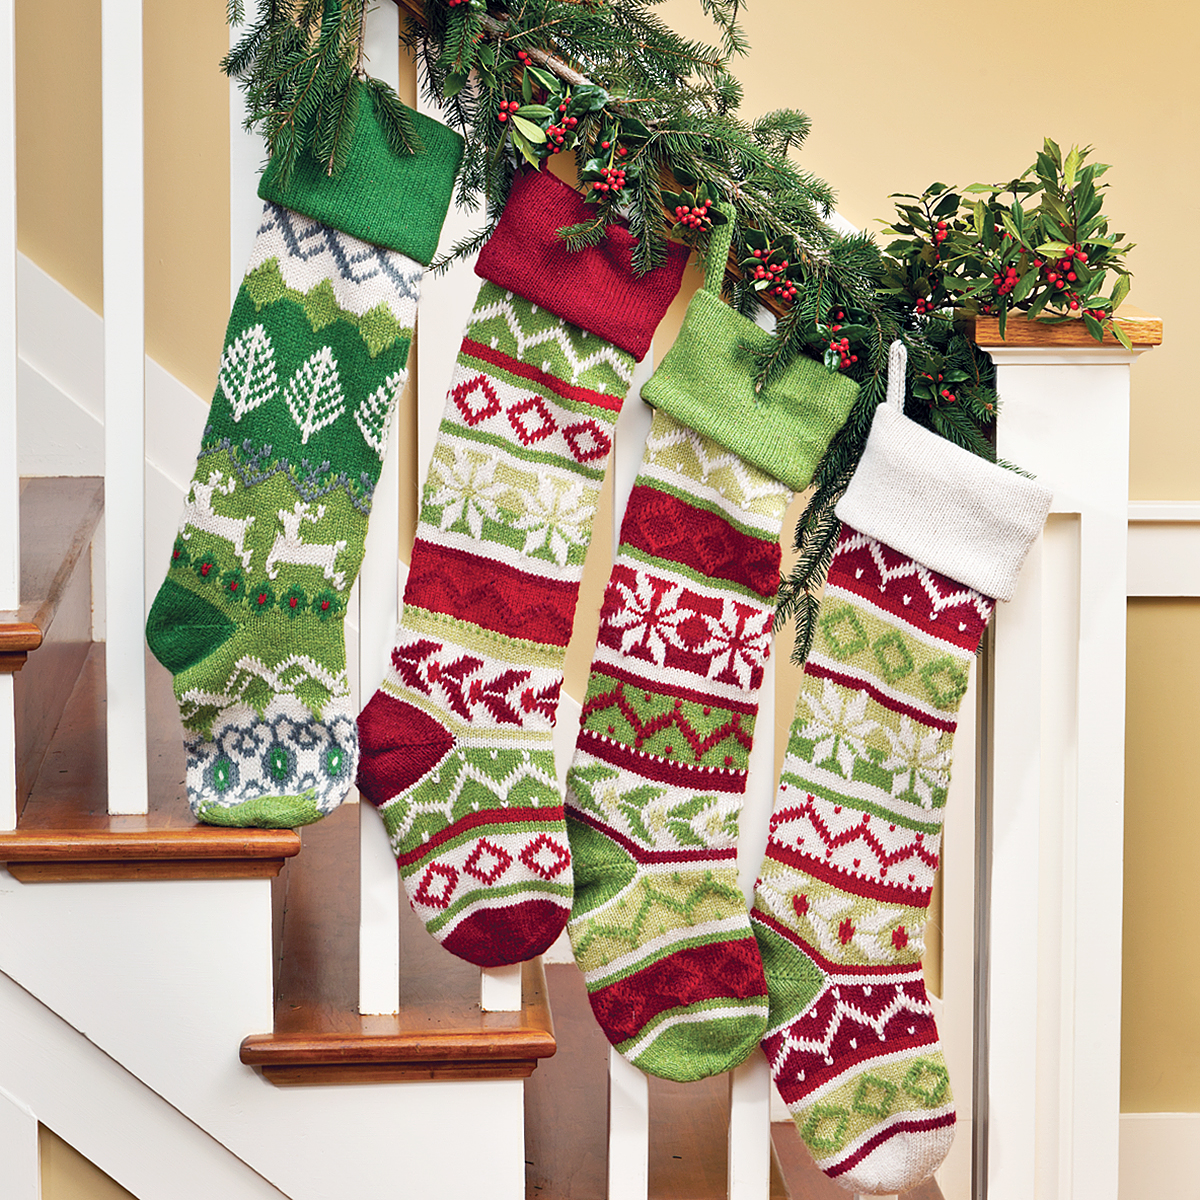 Carol's Attic_Stockings.jpg